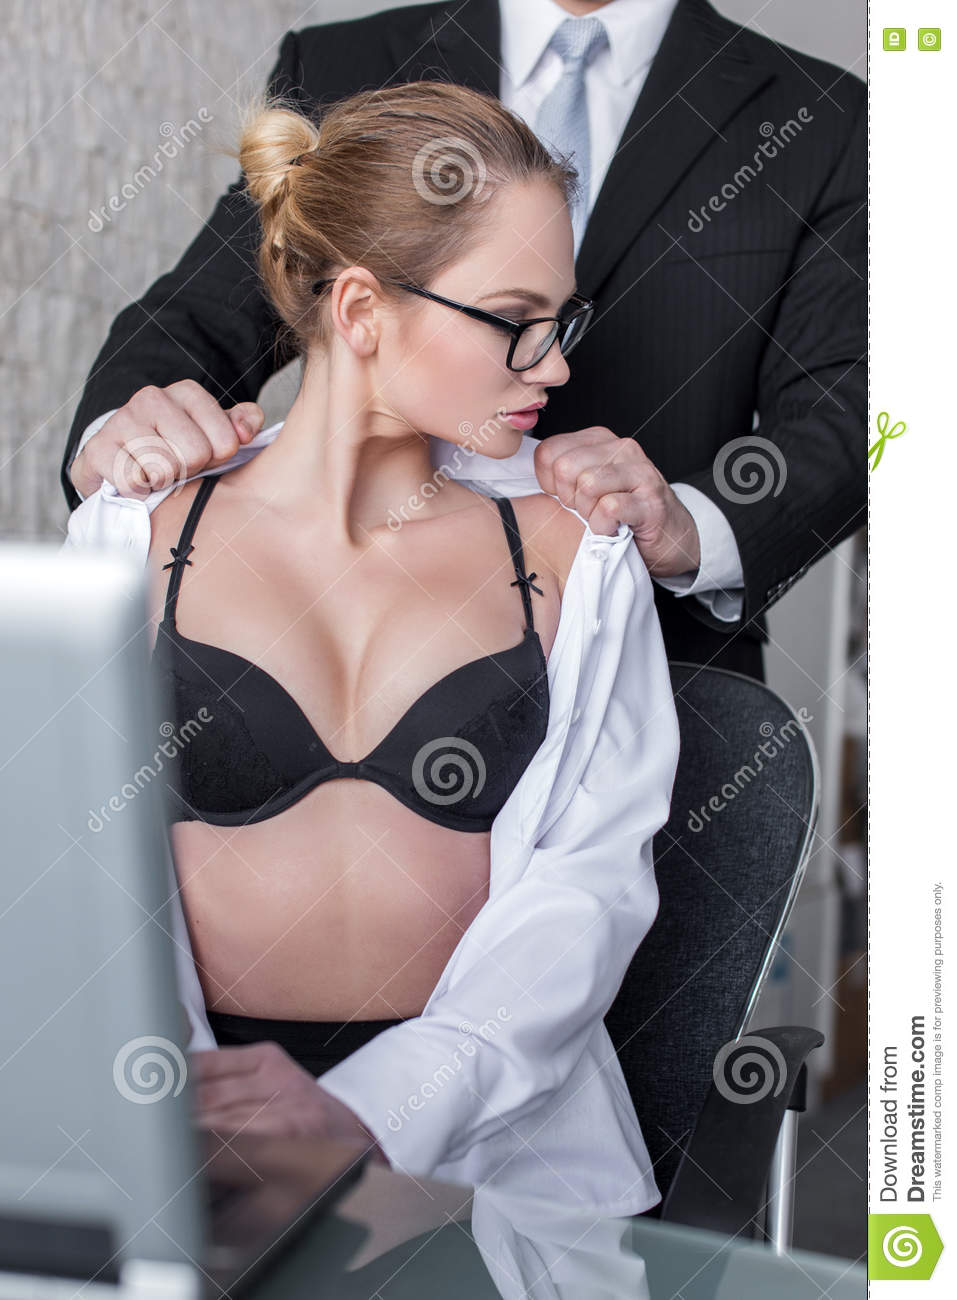 boss undressing blonde secretary in office stock photo - image of